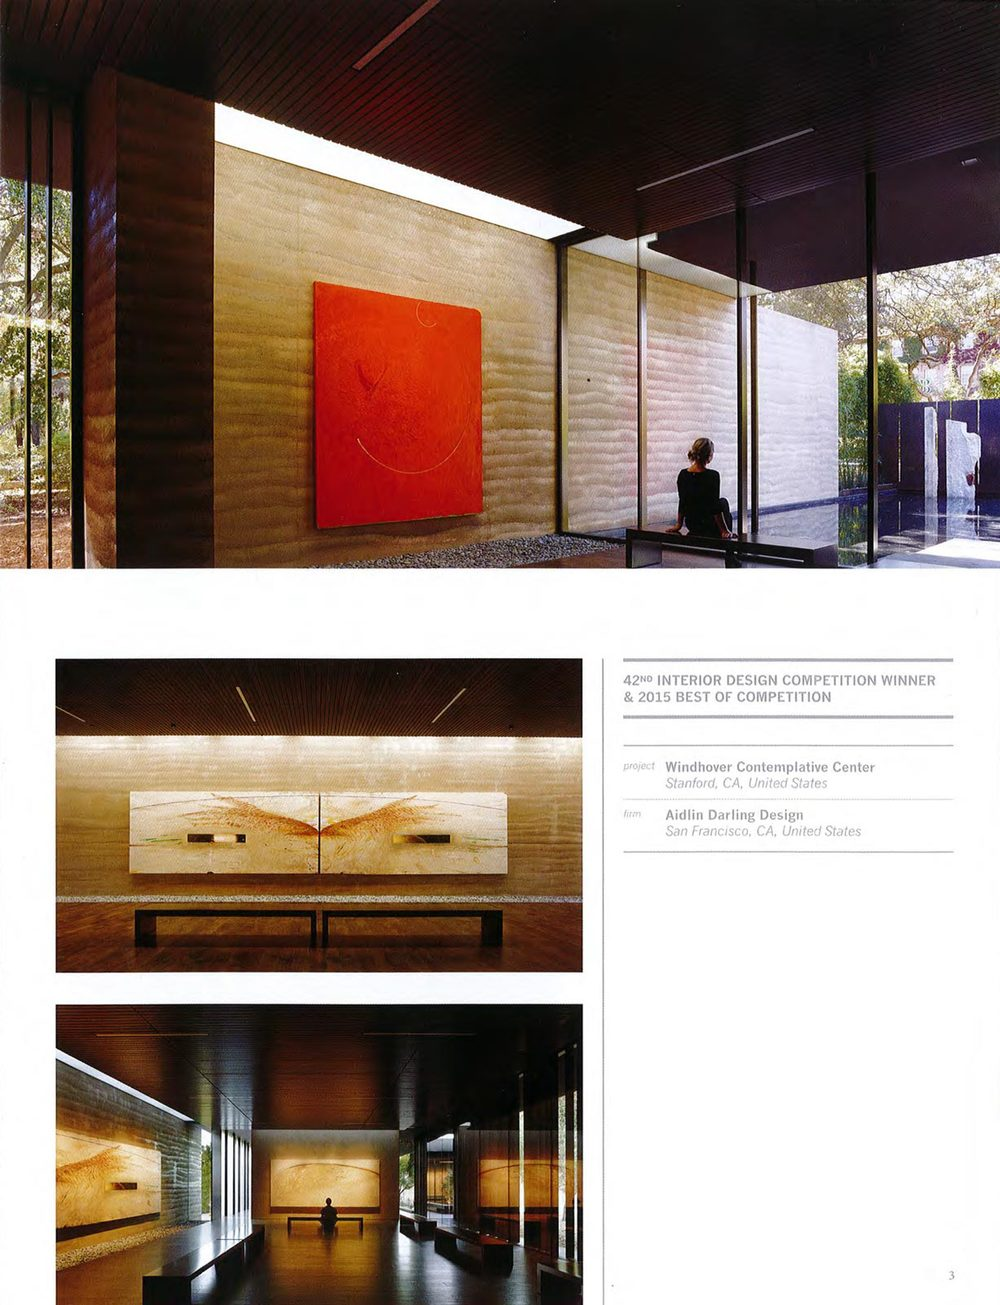 Windhover contemplative center wins best of competition in for Interior design association